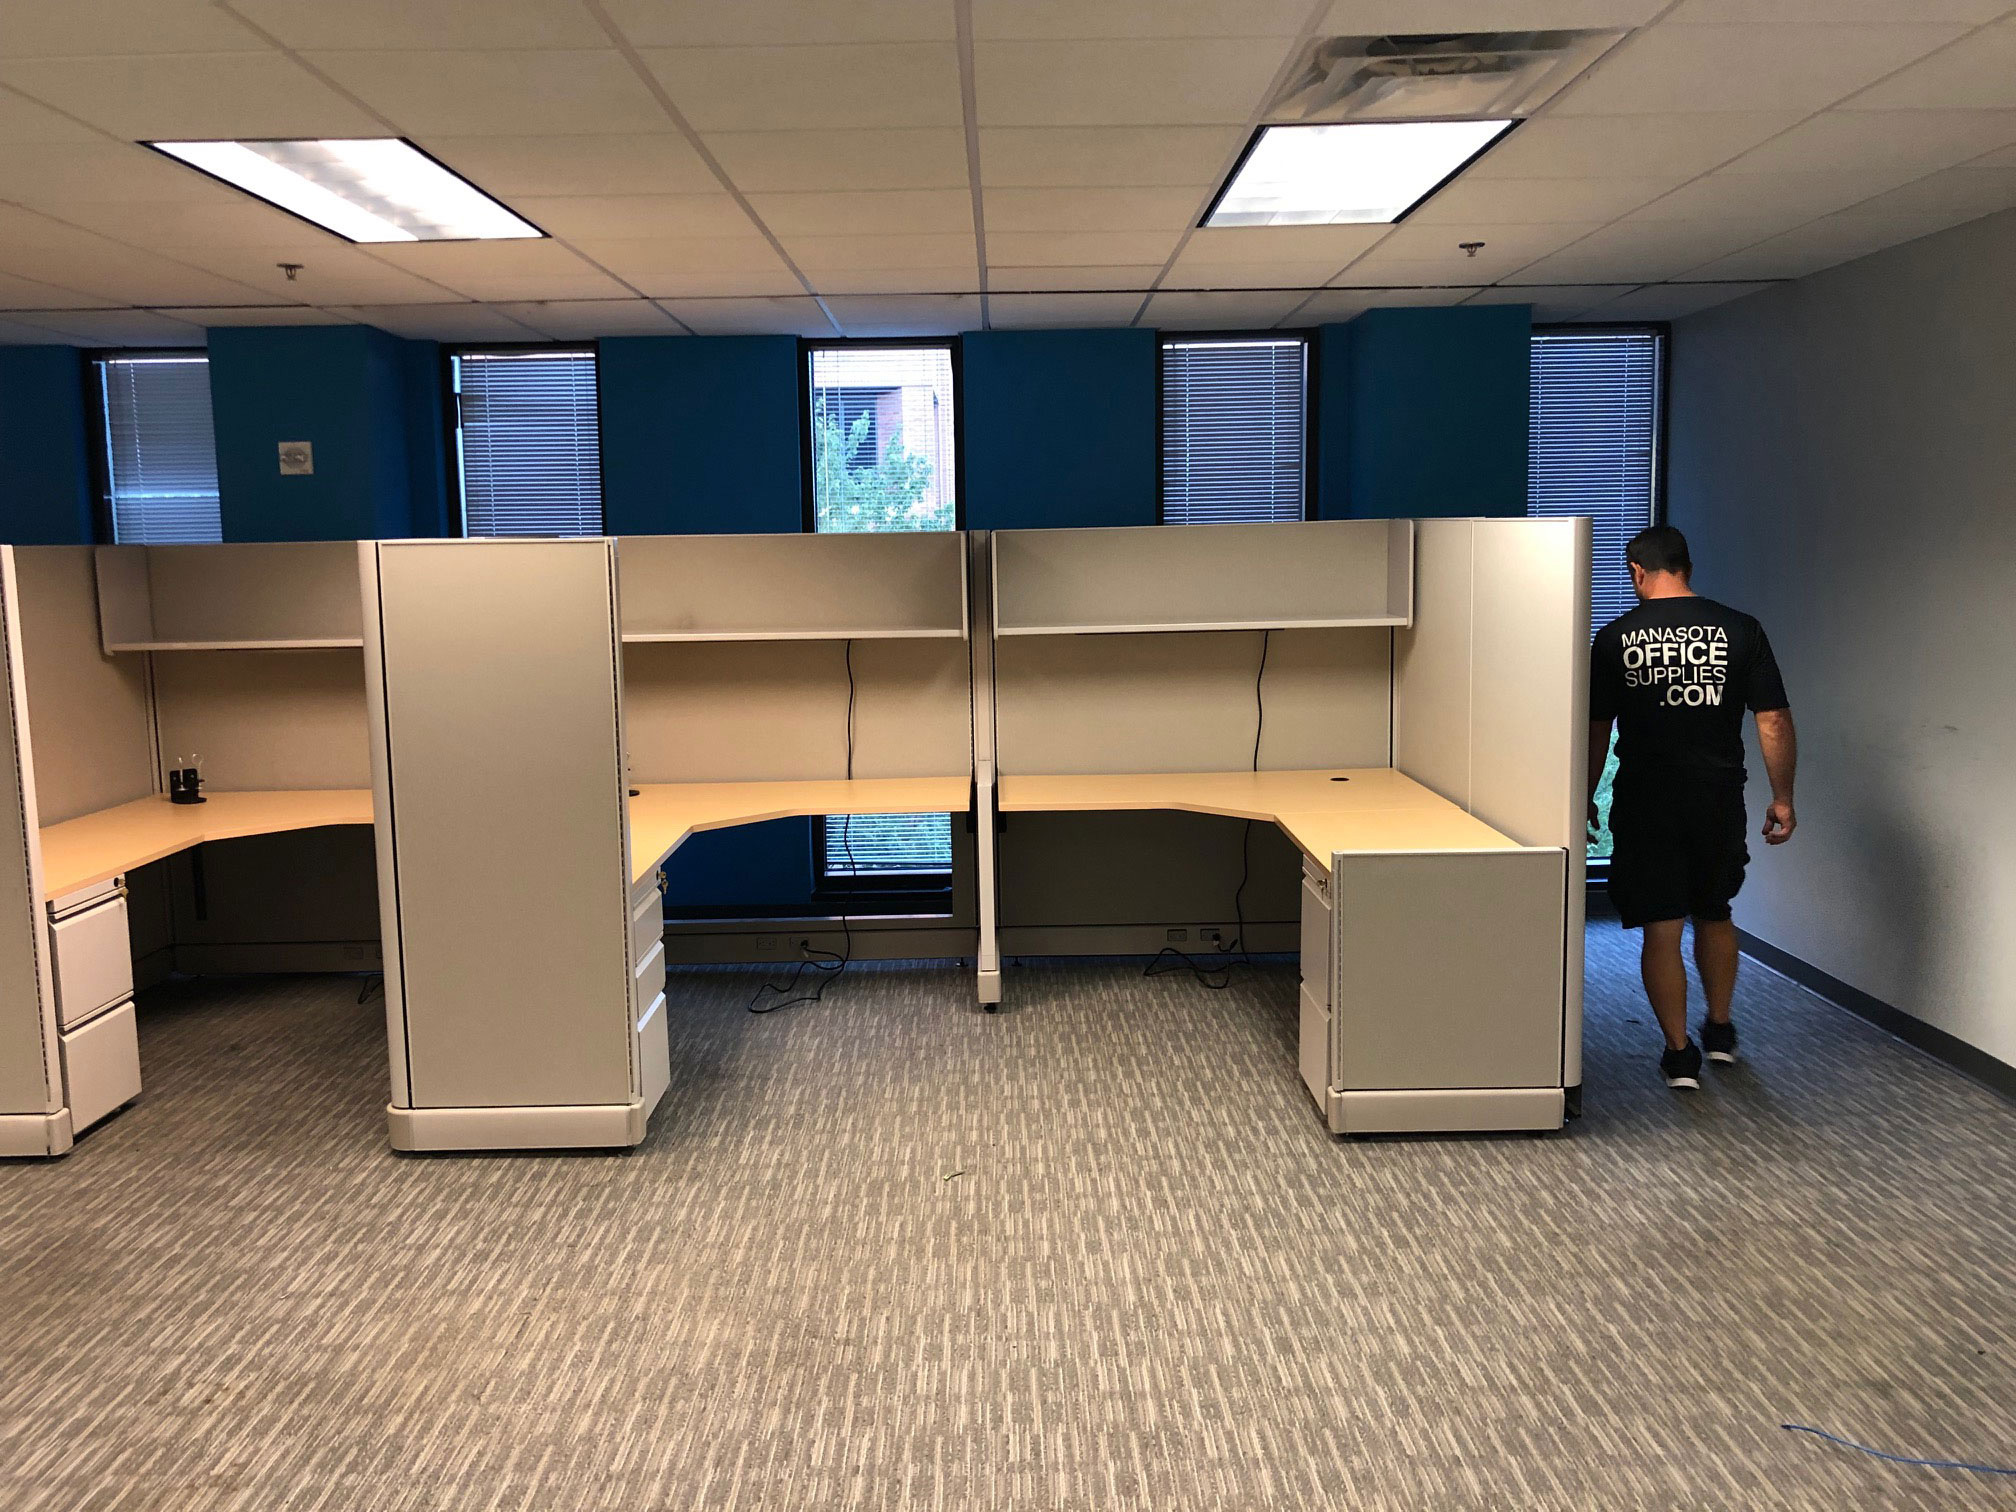 office-cubicles-for-sale-in-bartow-florida-2.jpg